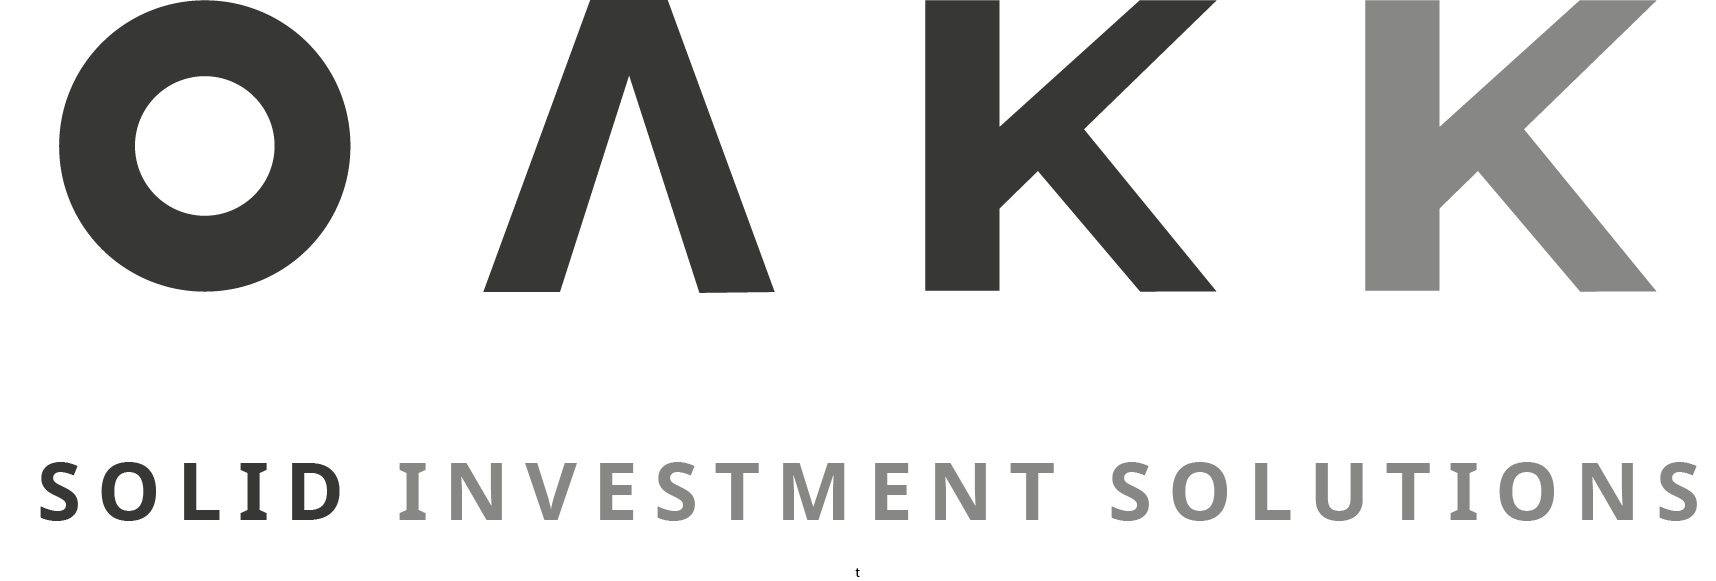 OAKK - Solid Investment Solutions